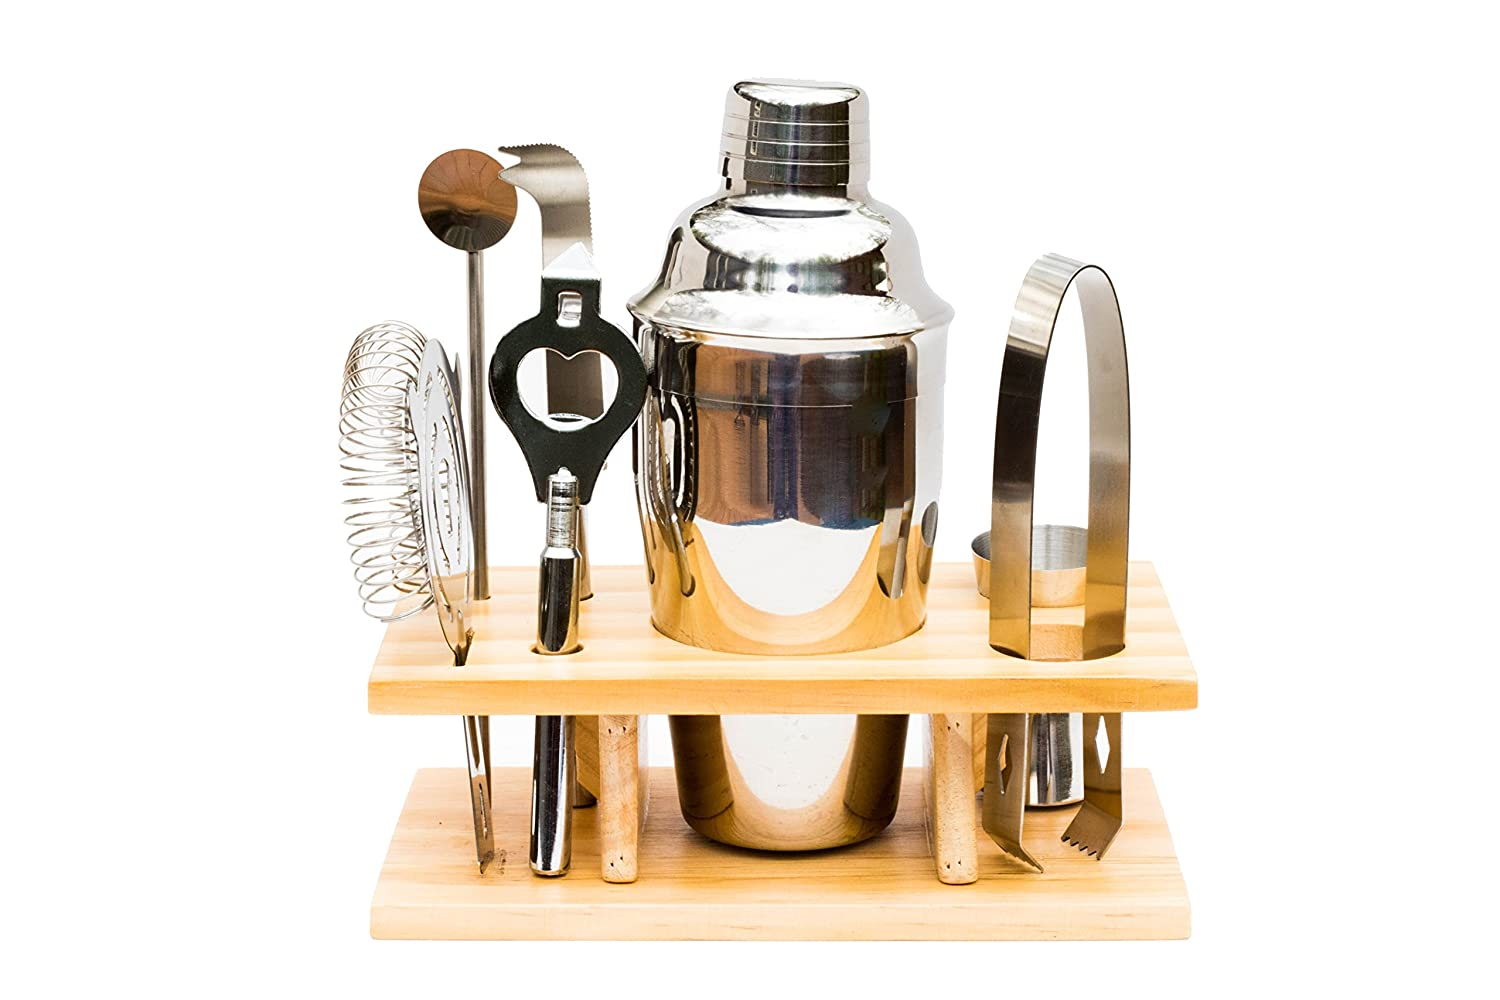 Bar Set - 7 Piece Cocktail Martini Shaker Set with Organizer Stand and Accessories - 550 Milliter 18.5 Ounce Shaker. Murries Place SYNCHKG121180